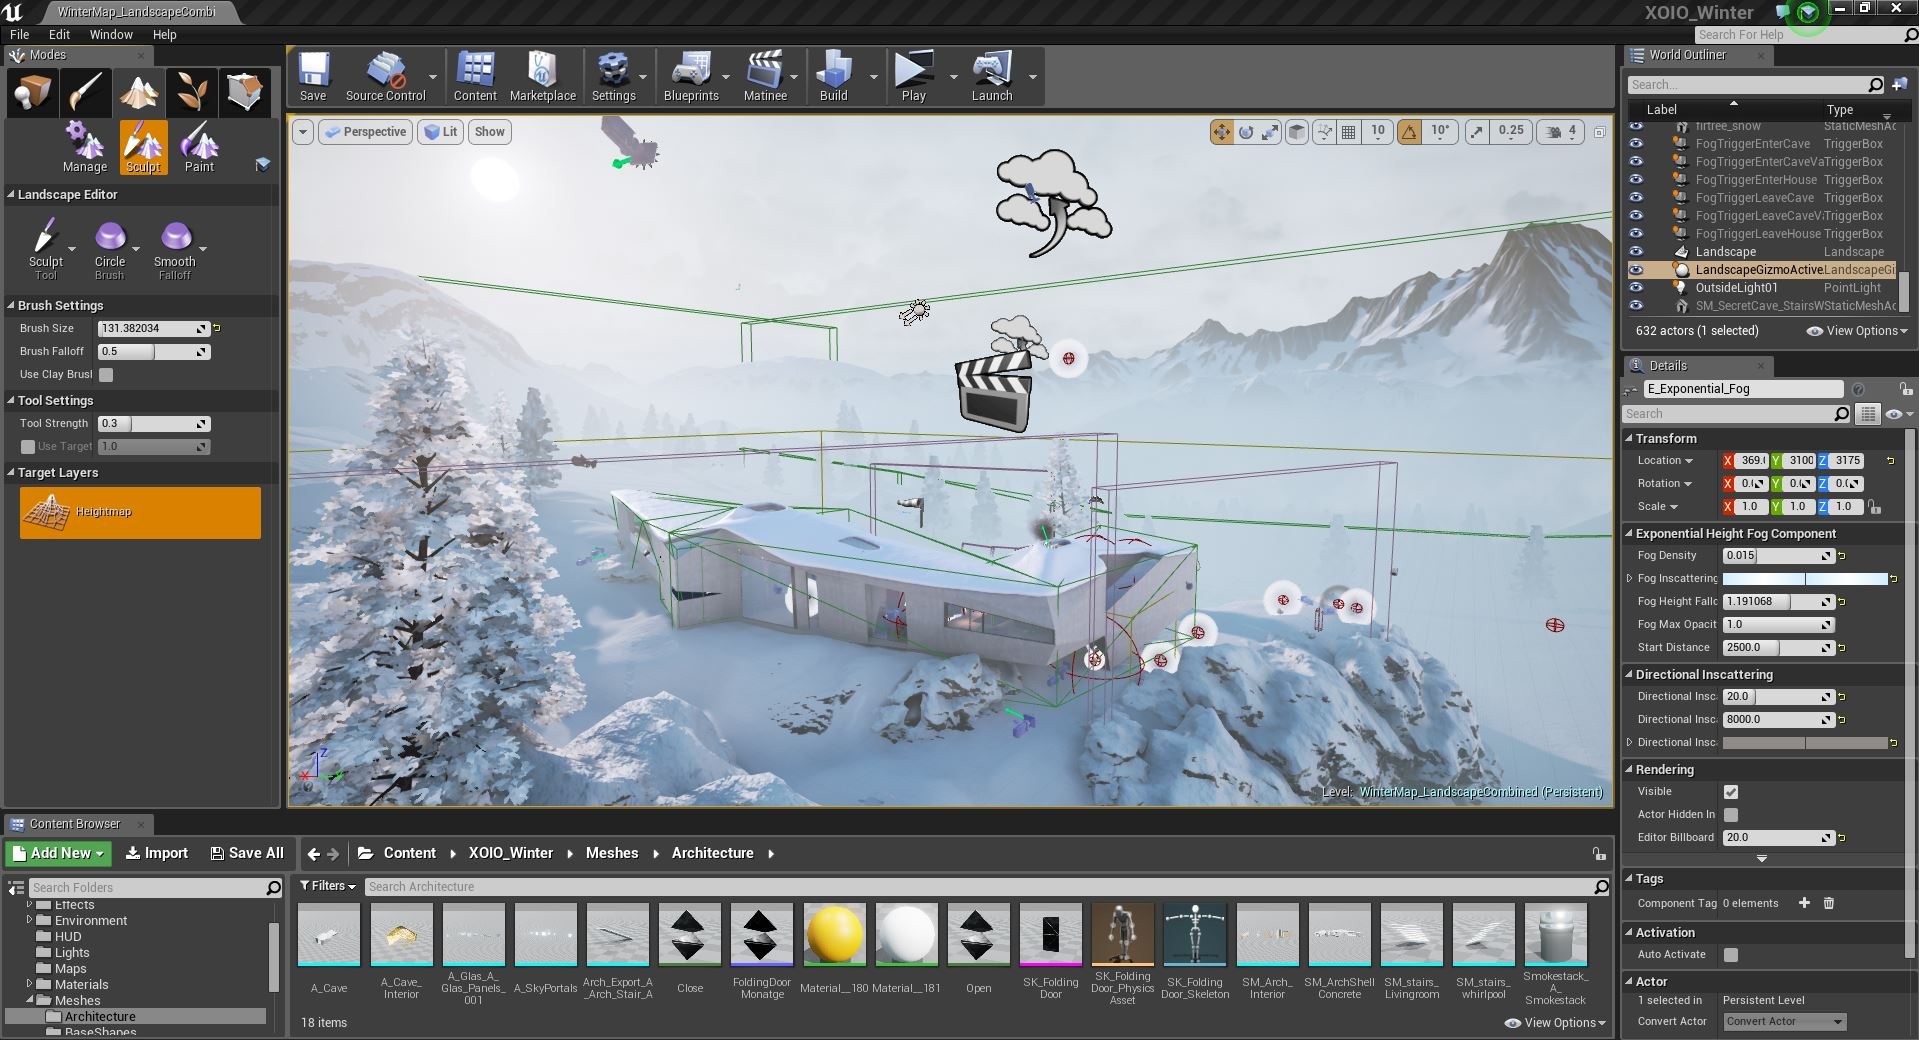 Winter_Chalet_Unreal_Editor_by_xoio